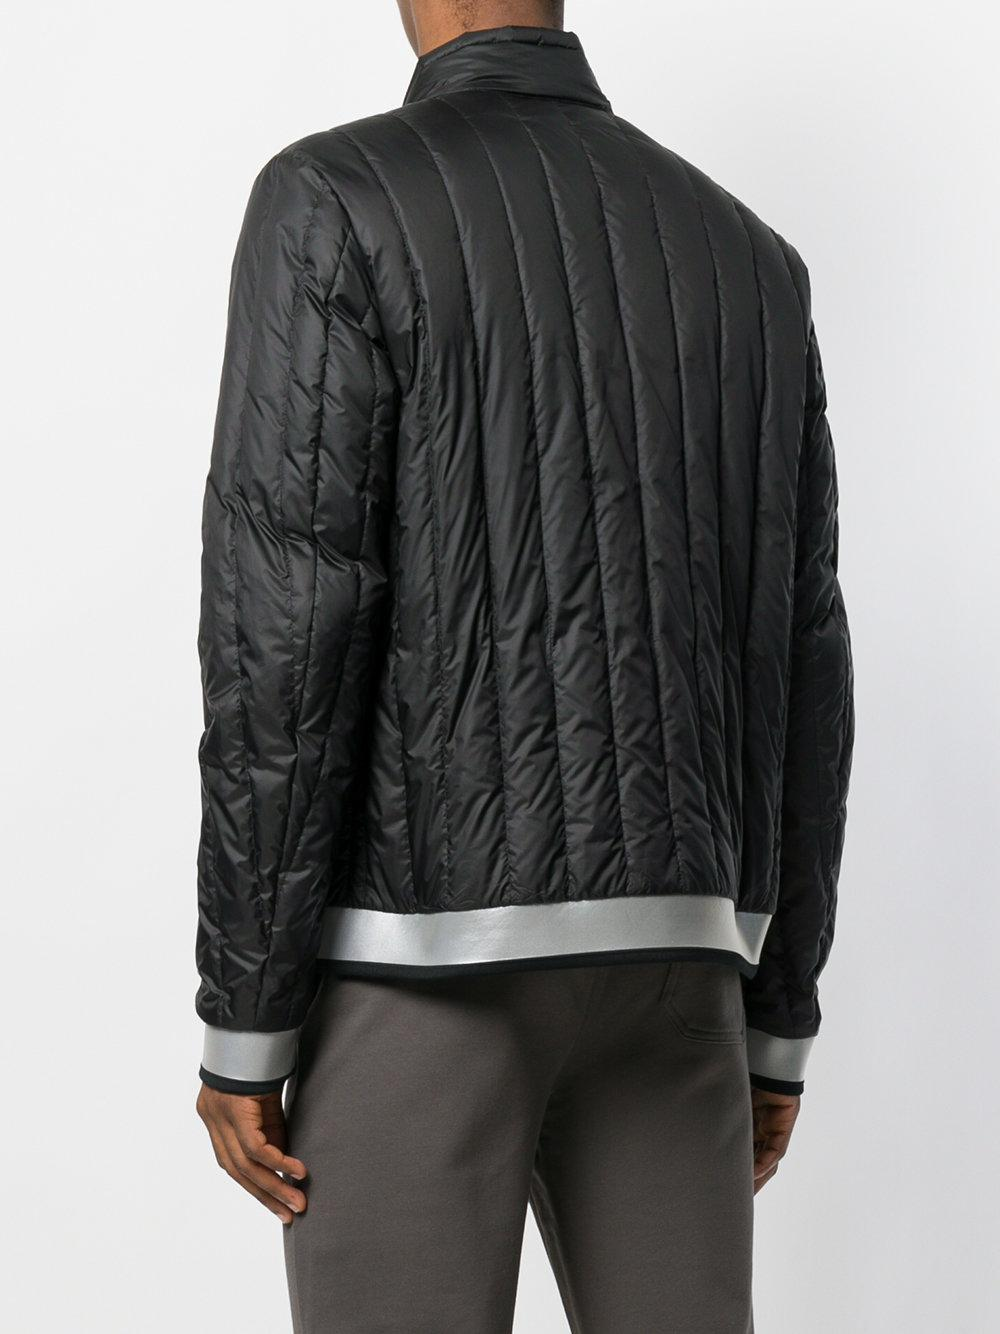 Moncler - Black C X Craig Green Reflective Stripe Quilted Jacket for Men - Lyst. View fullscreen